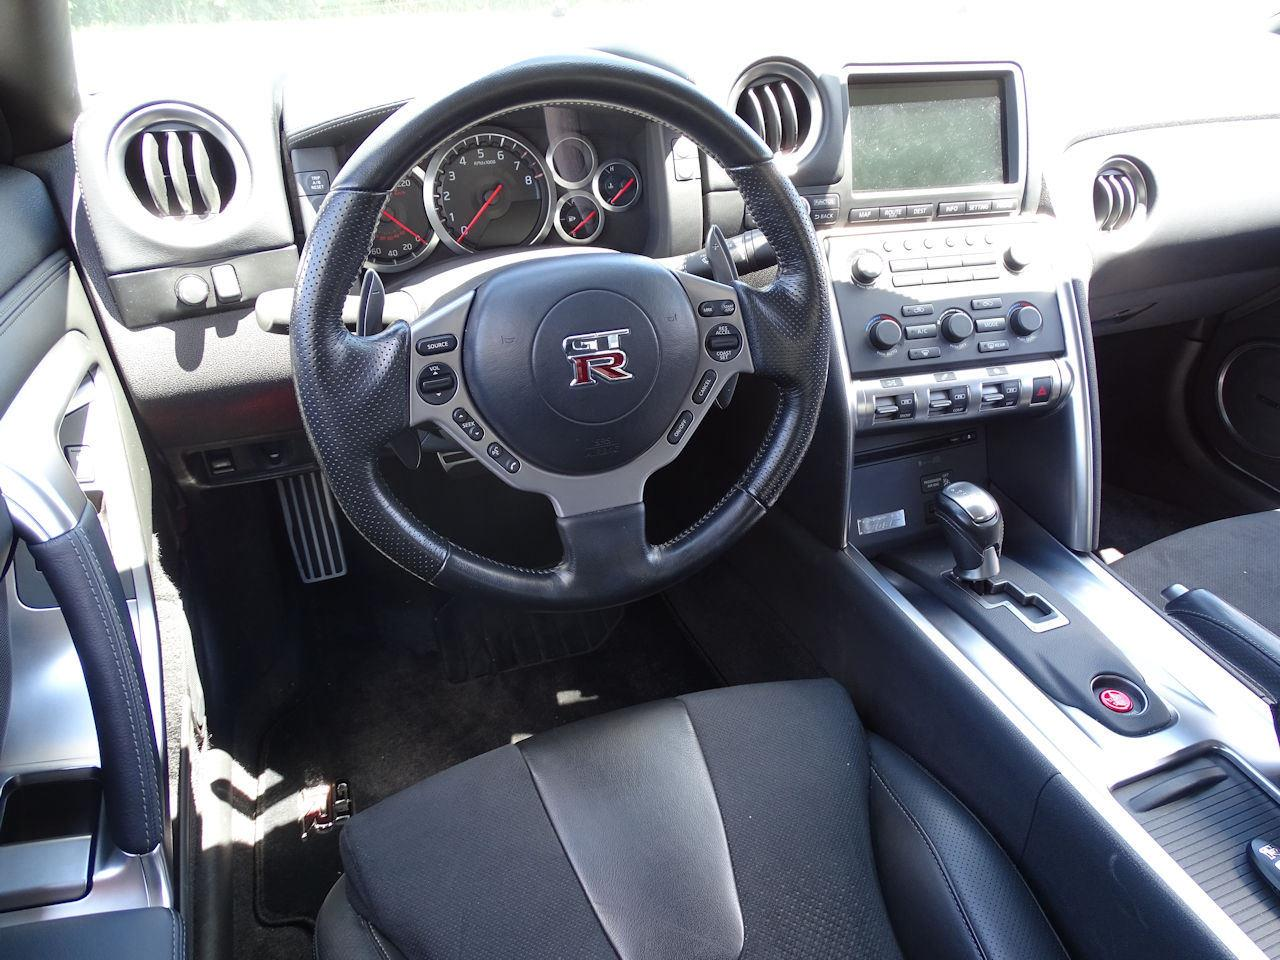 Large Picture of 2010 GT-R - $65,000.00 Offered by Gateway Classic Cars - Indianapolis - L8WR